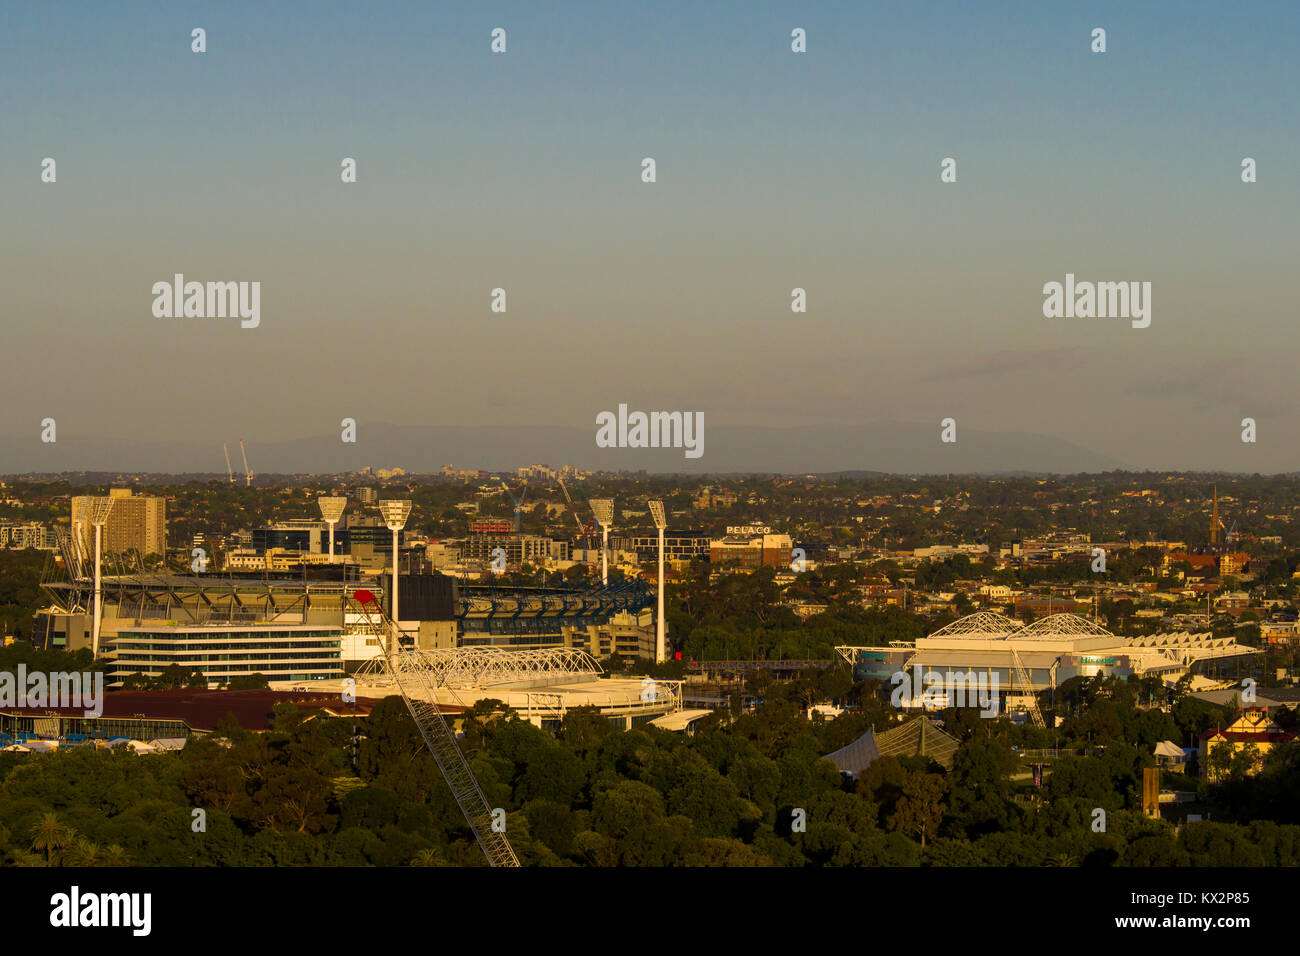 Sunsetting on the Melbourne Cricket Ground and the major tennis courts for the Australian Open in Melbourne Park, - Stock Image